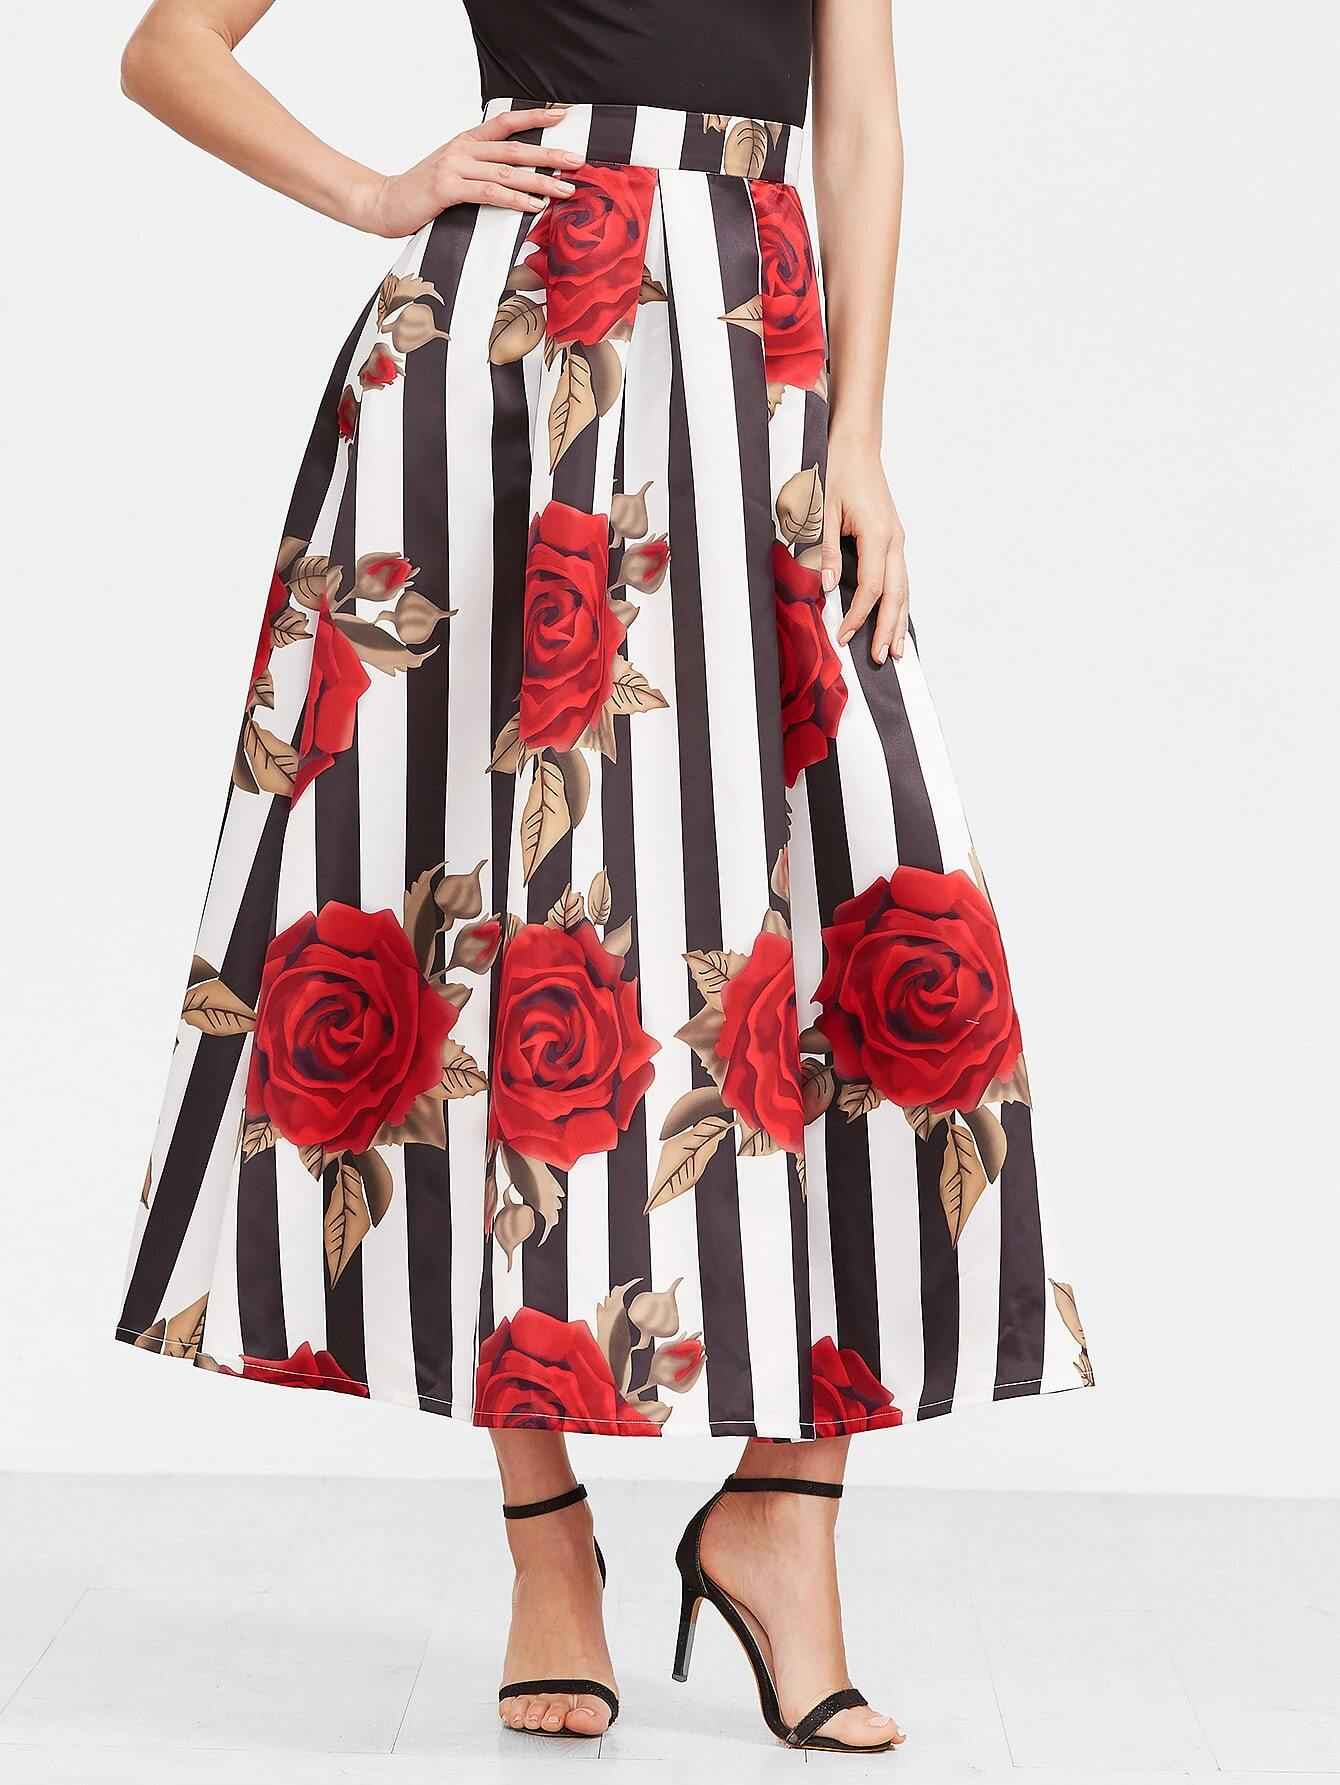 Shop for black white striped skirt online at Target. Free shipping on purchases over $35 and save 5% every day with your Target REDcard.